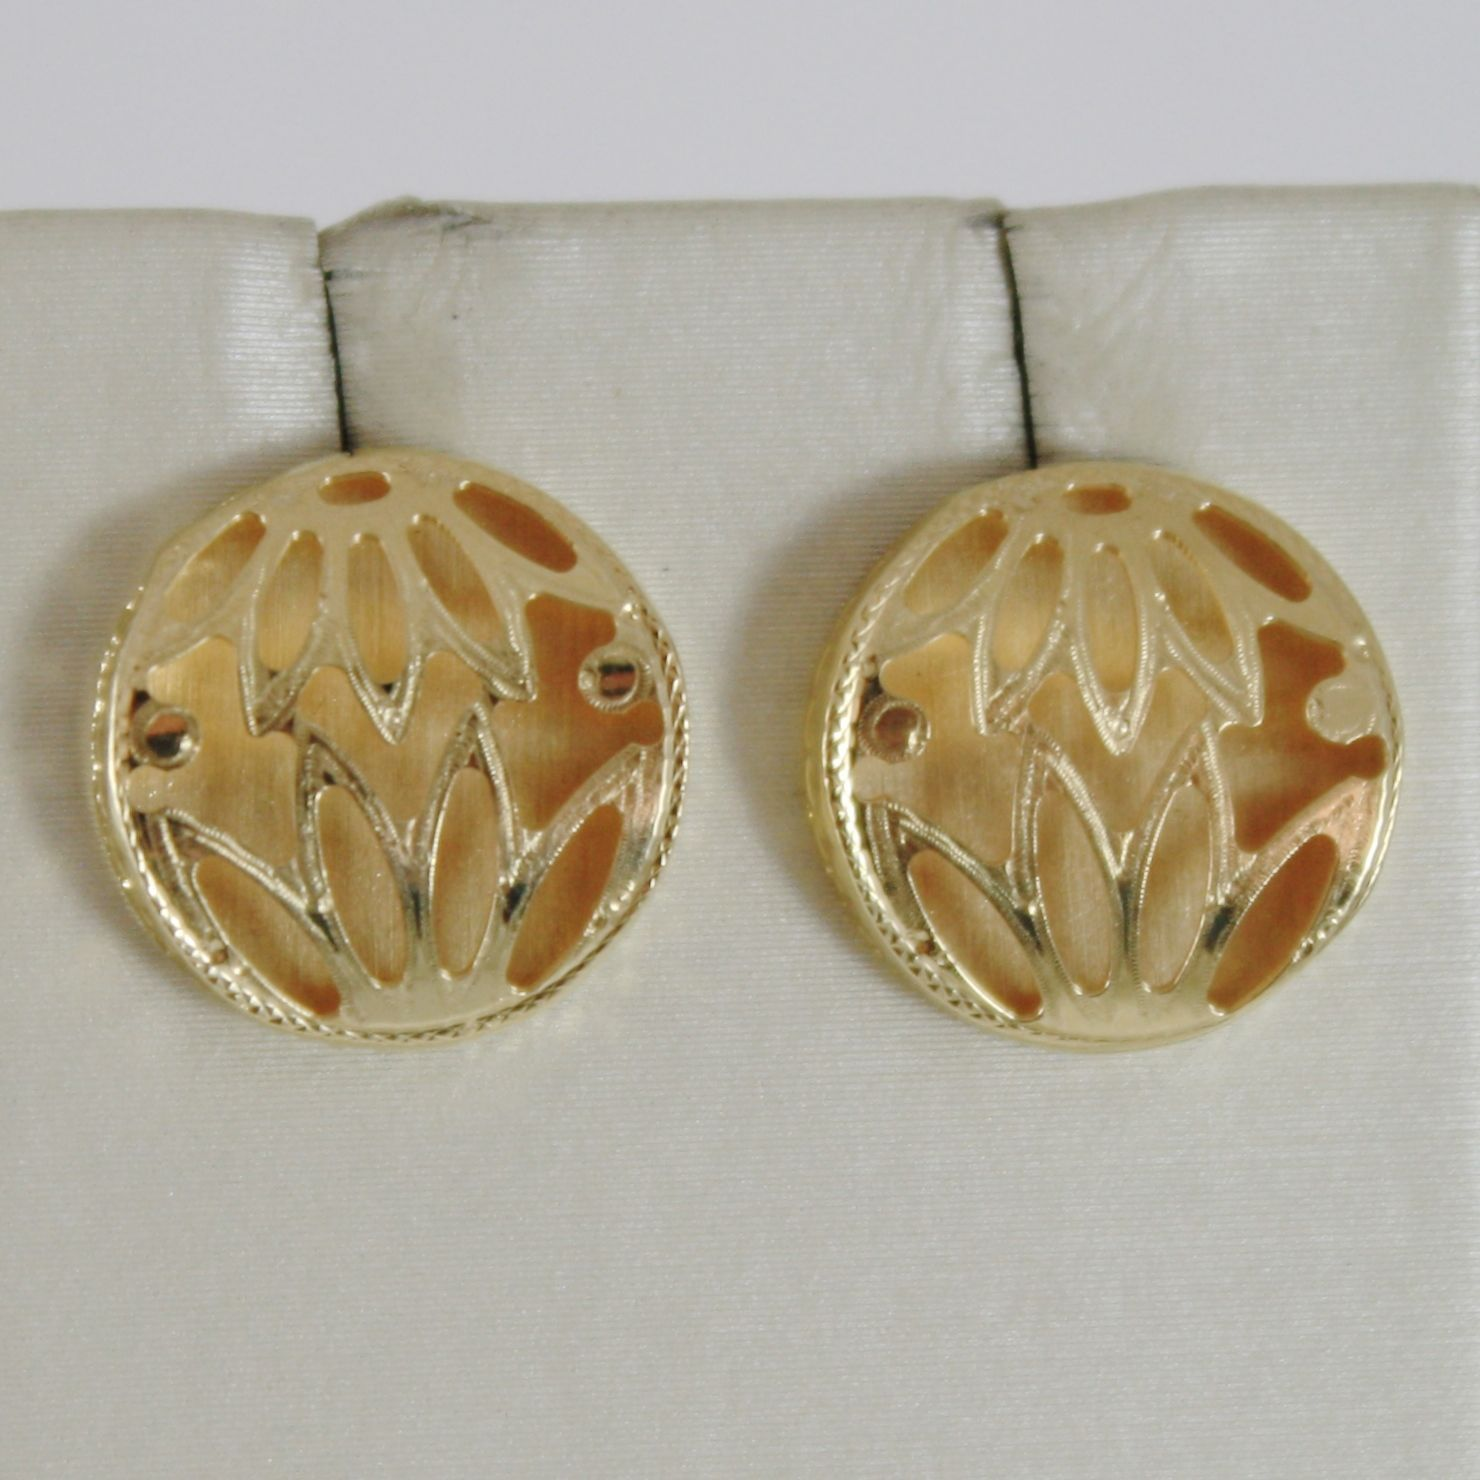 18K YELLOW GOLD ROUND BUTTON FLOWER EARRINGS FINELY WORKED DOUBLE MADE IN ITALY